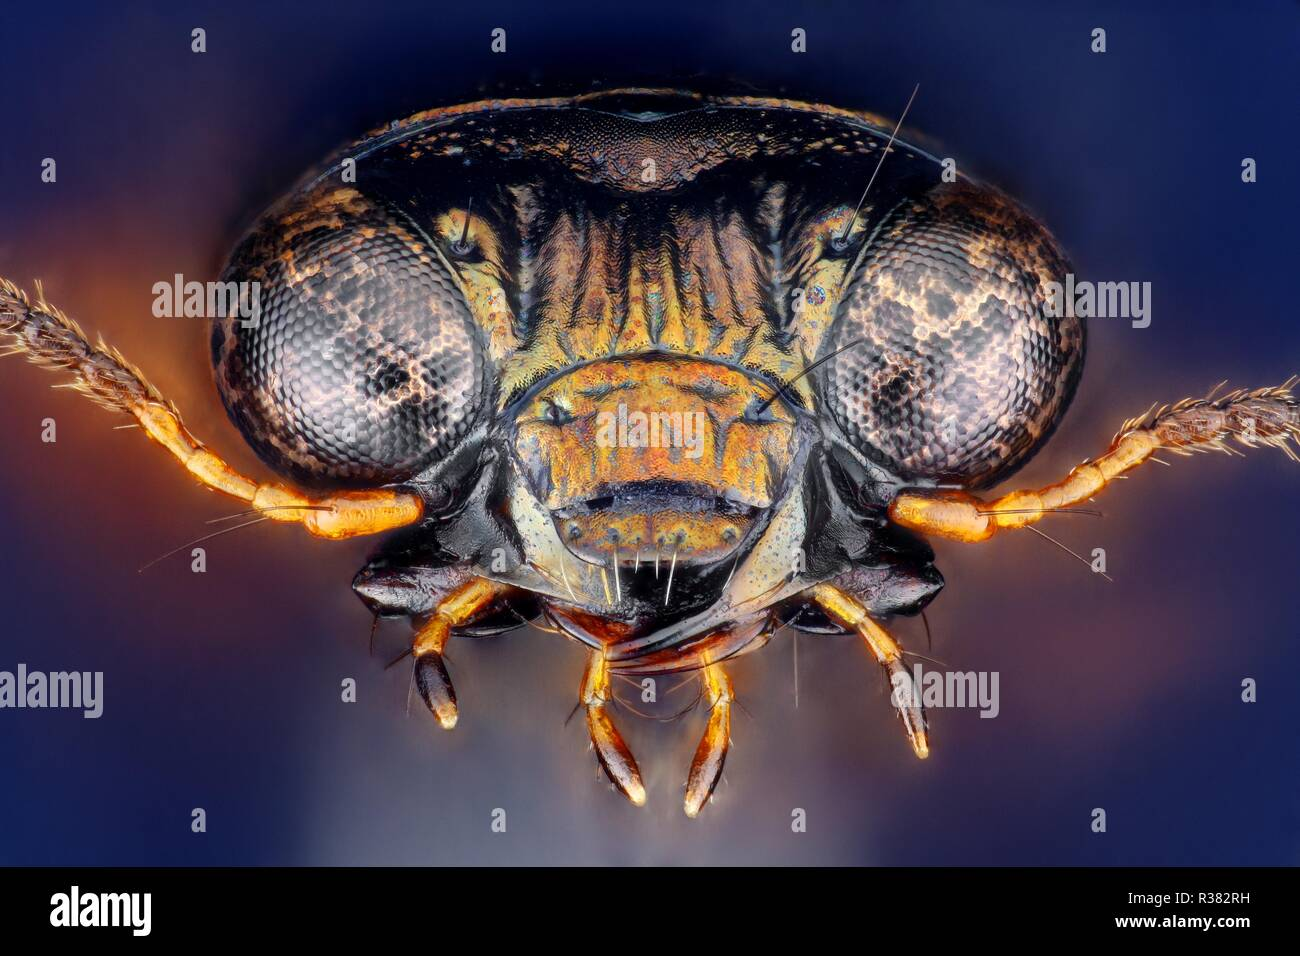 Extremely sharp and detailed study of a Notiophilus ground beetle head taken with a macro lens stacked from many images into one very sharp photo. - Stock Image